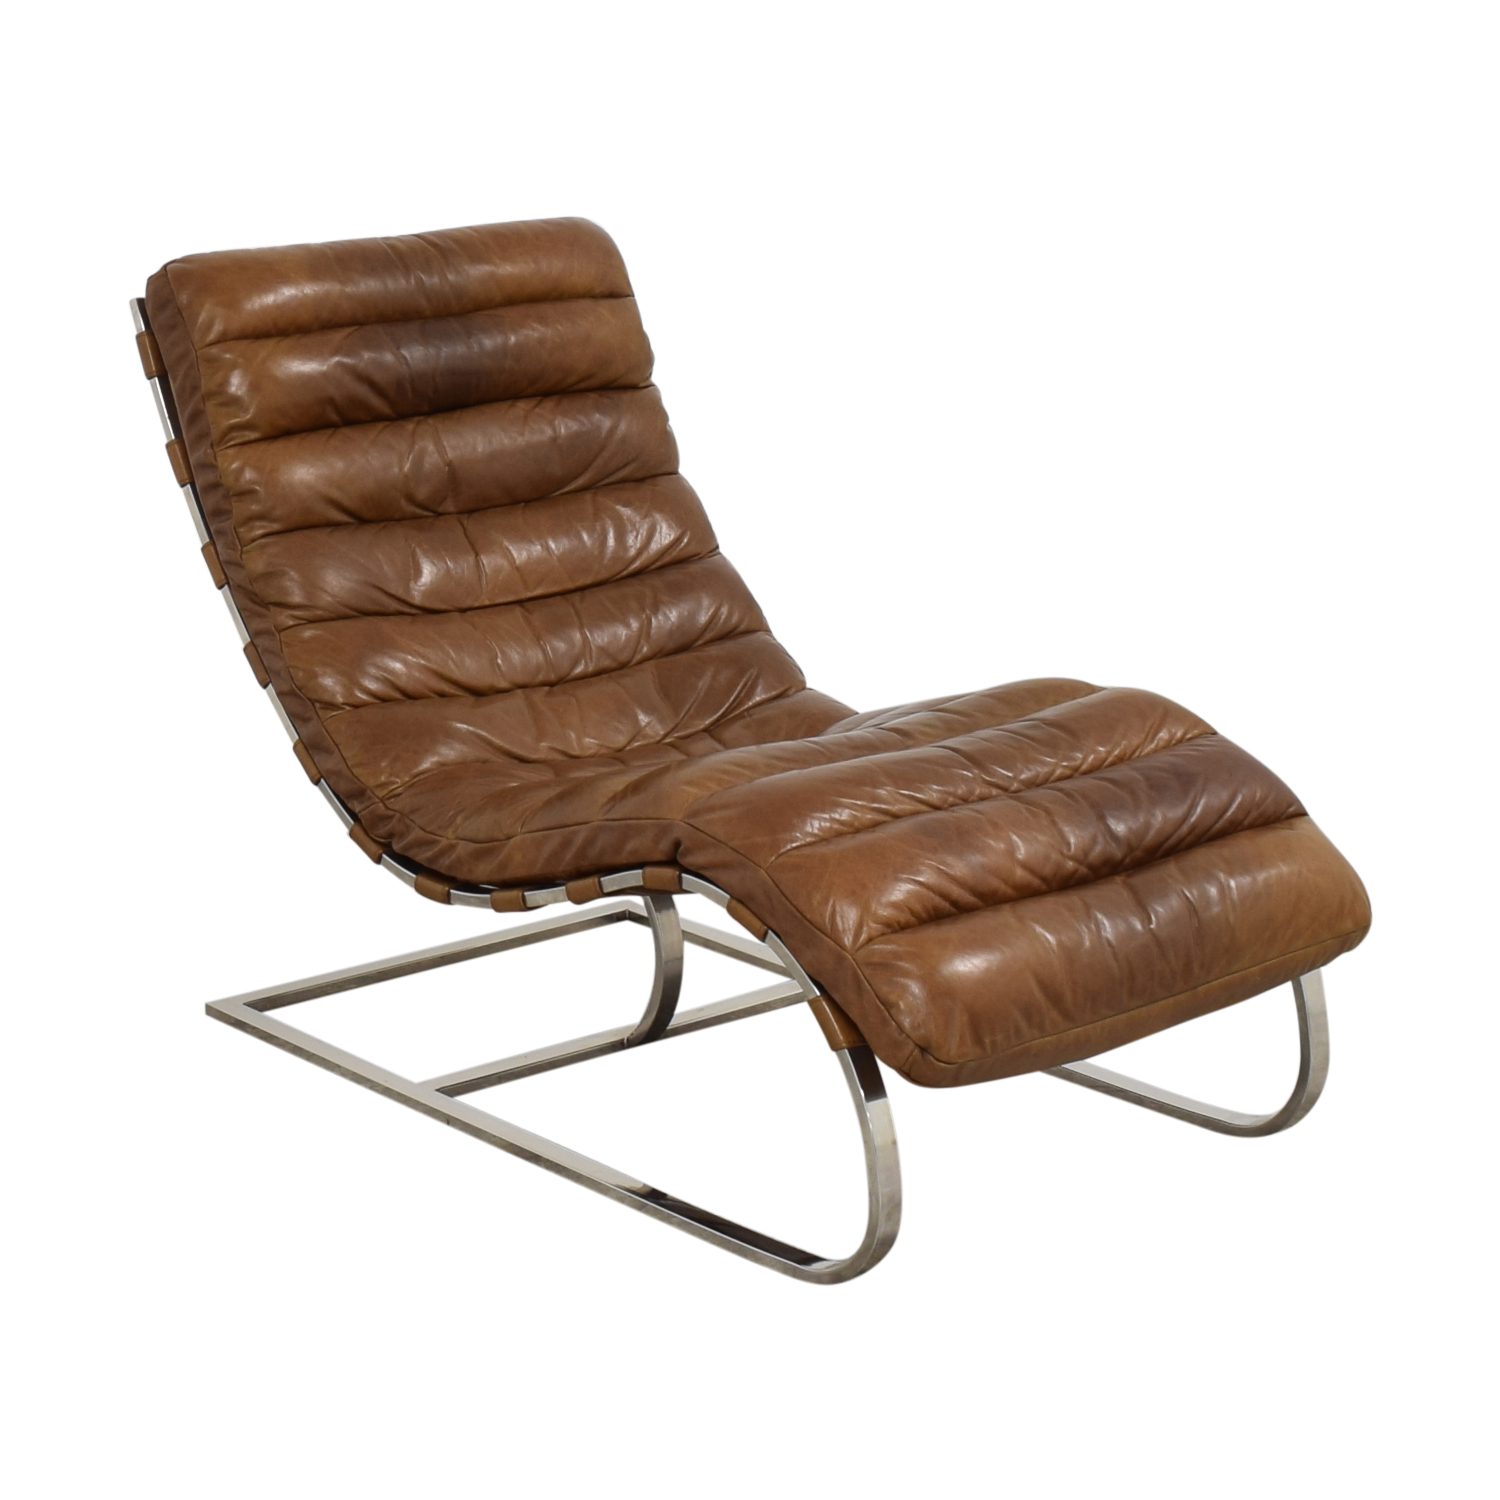 buy Restoration Hardware Oviedo Leather Chair Restoration Hardware Sofas